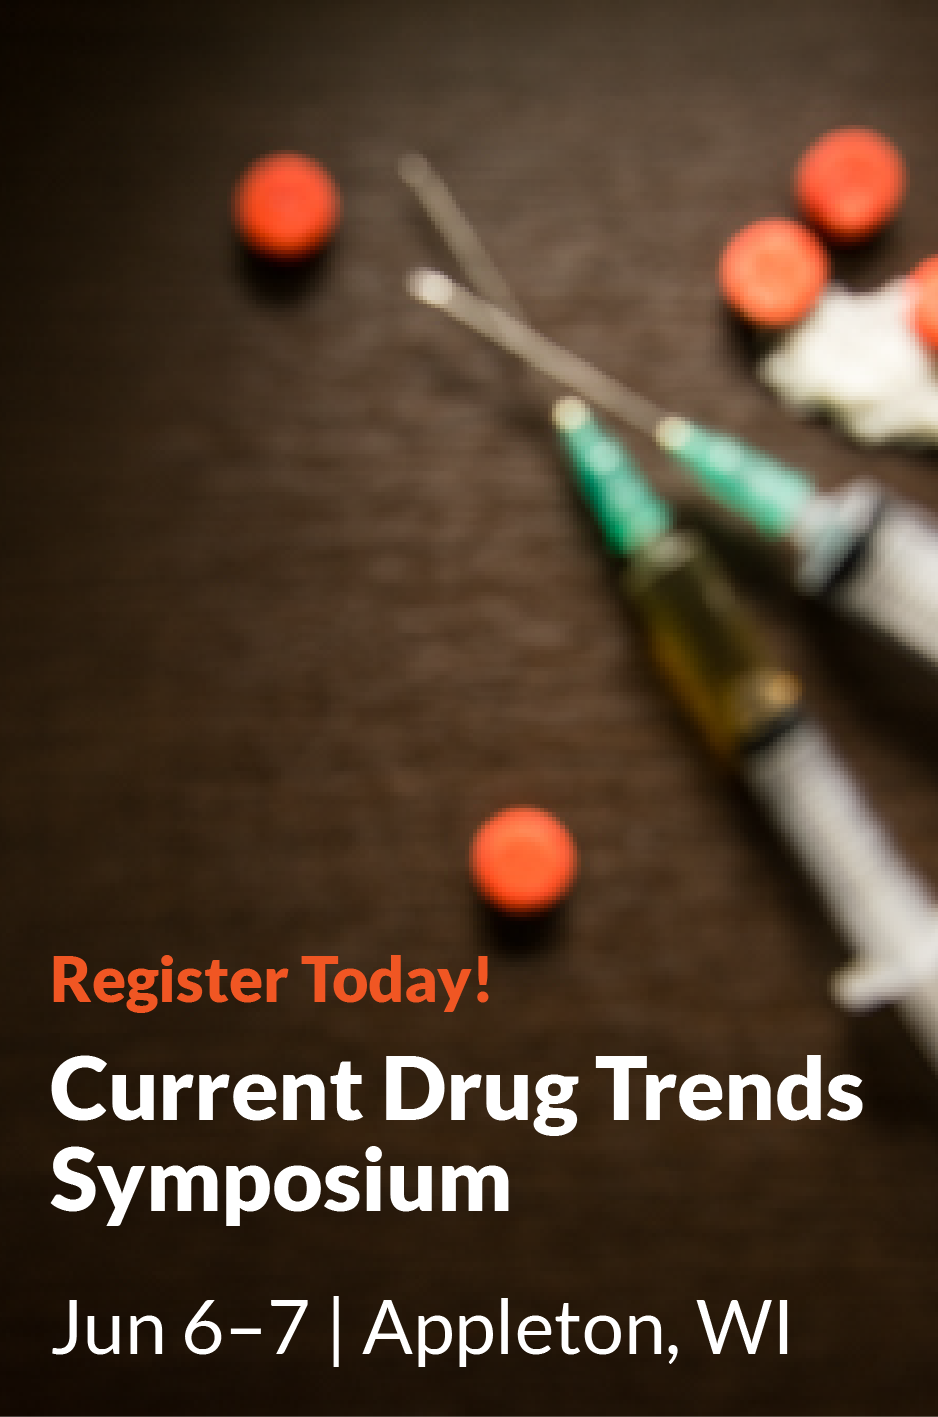 Current Drug Trends Symposium